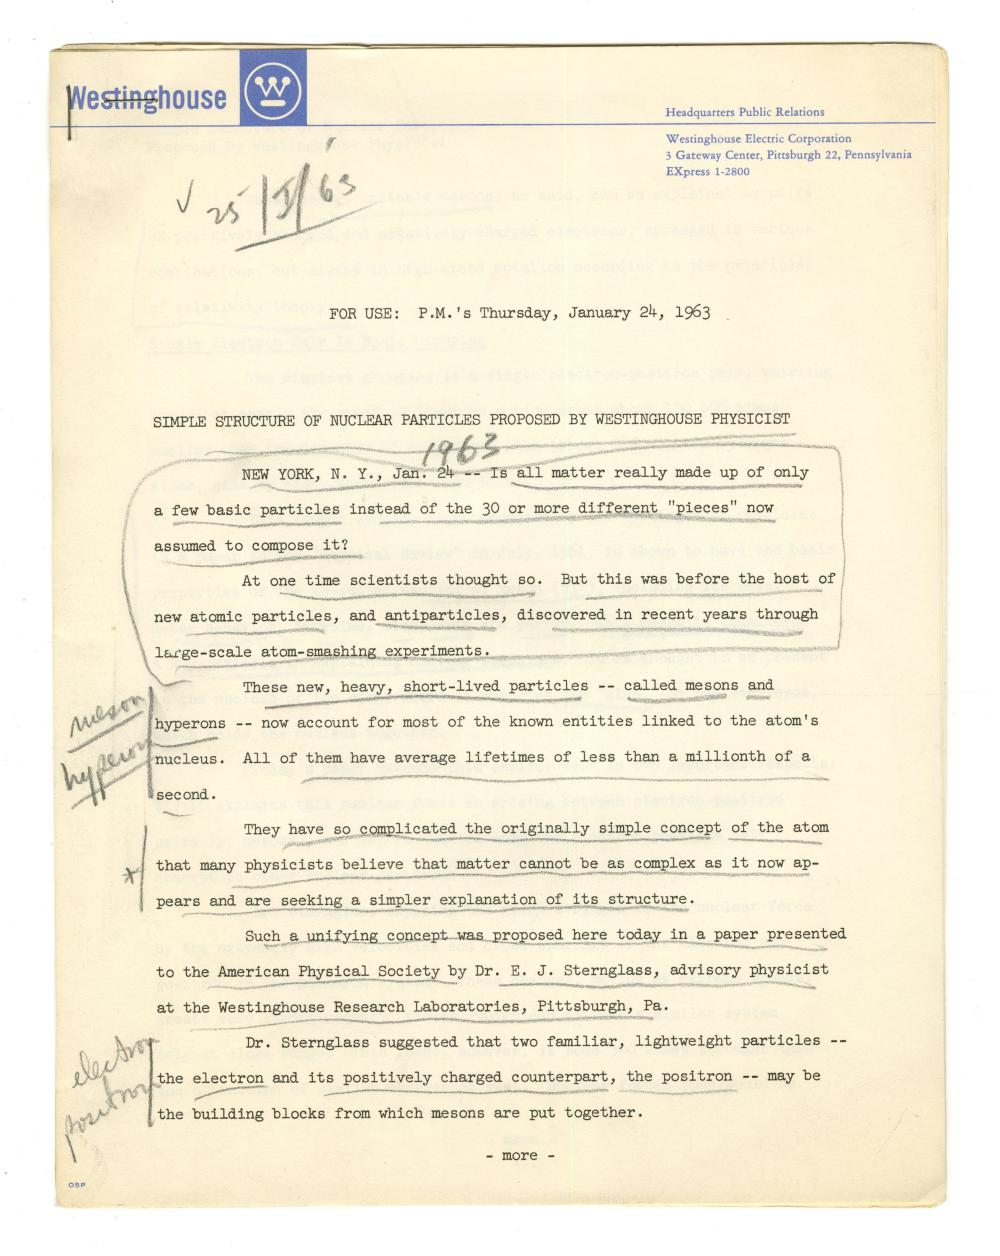 Moe Berg Notes on Nuclear Particles, Having Worked On Project Larson. The Catcher was a Spy